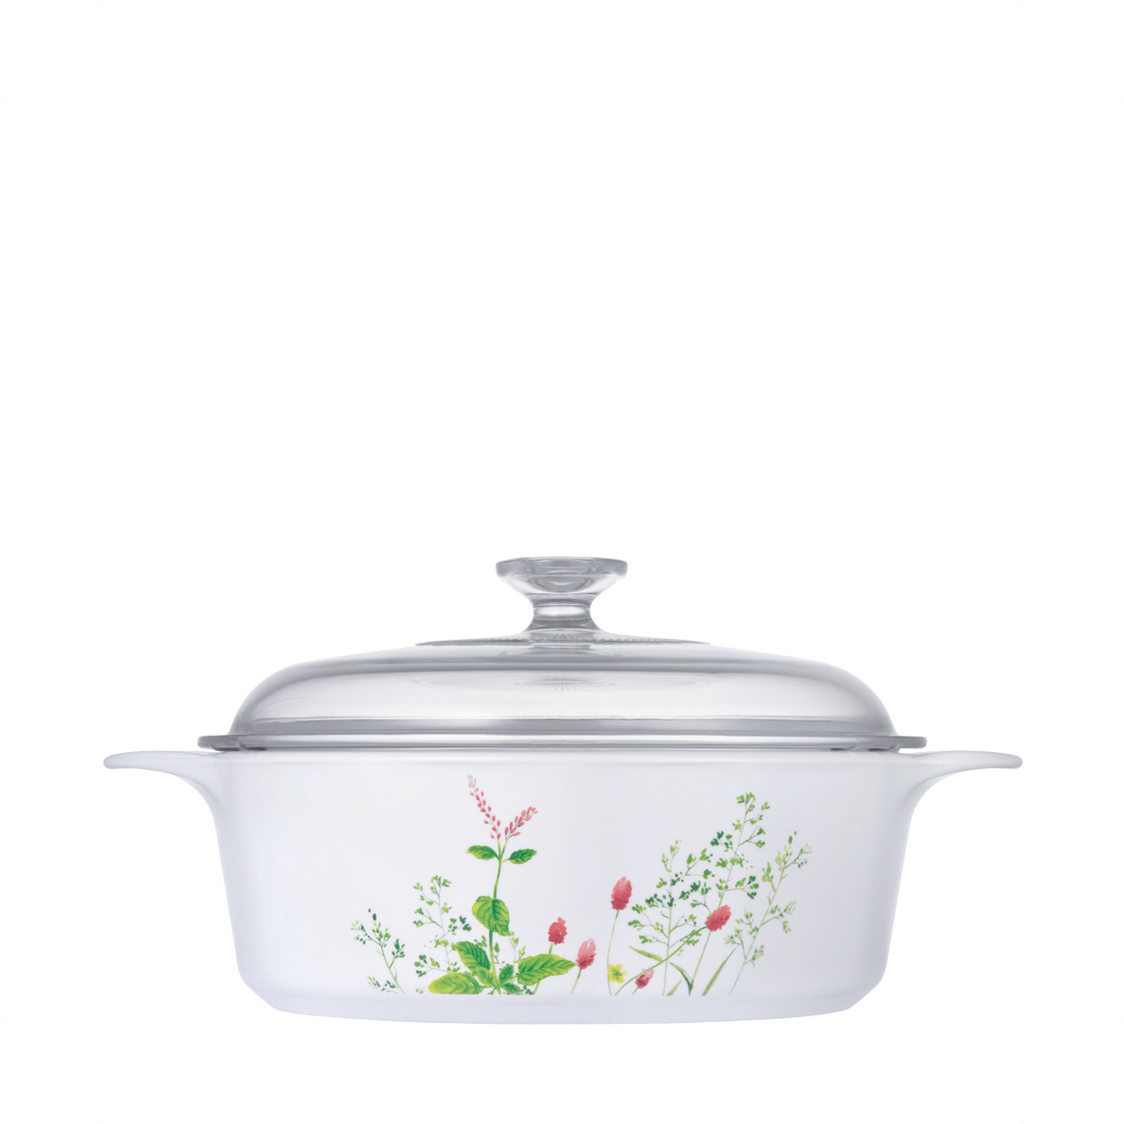 325L Covered Casserole P-32-PVG